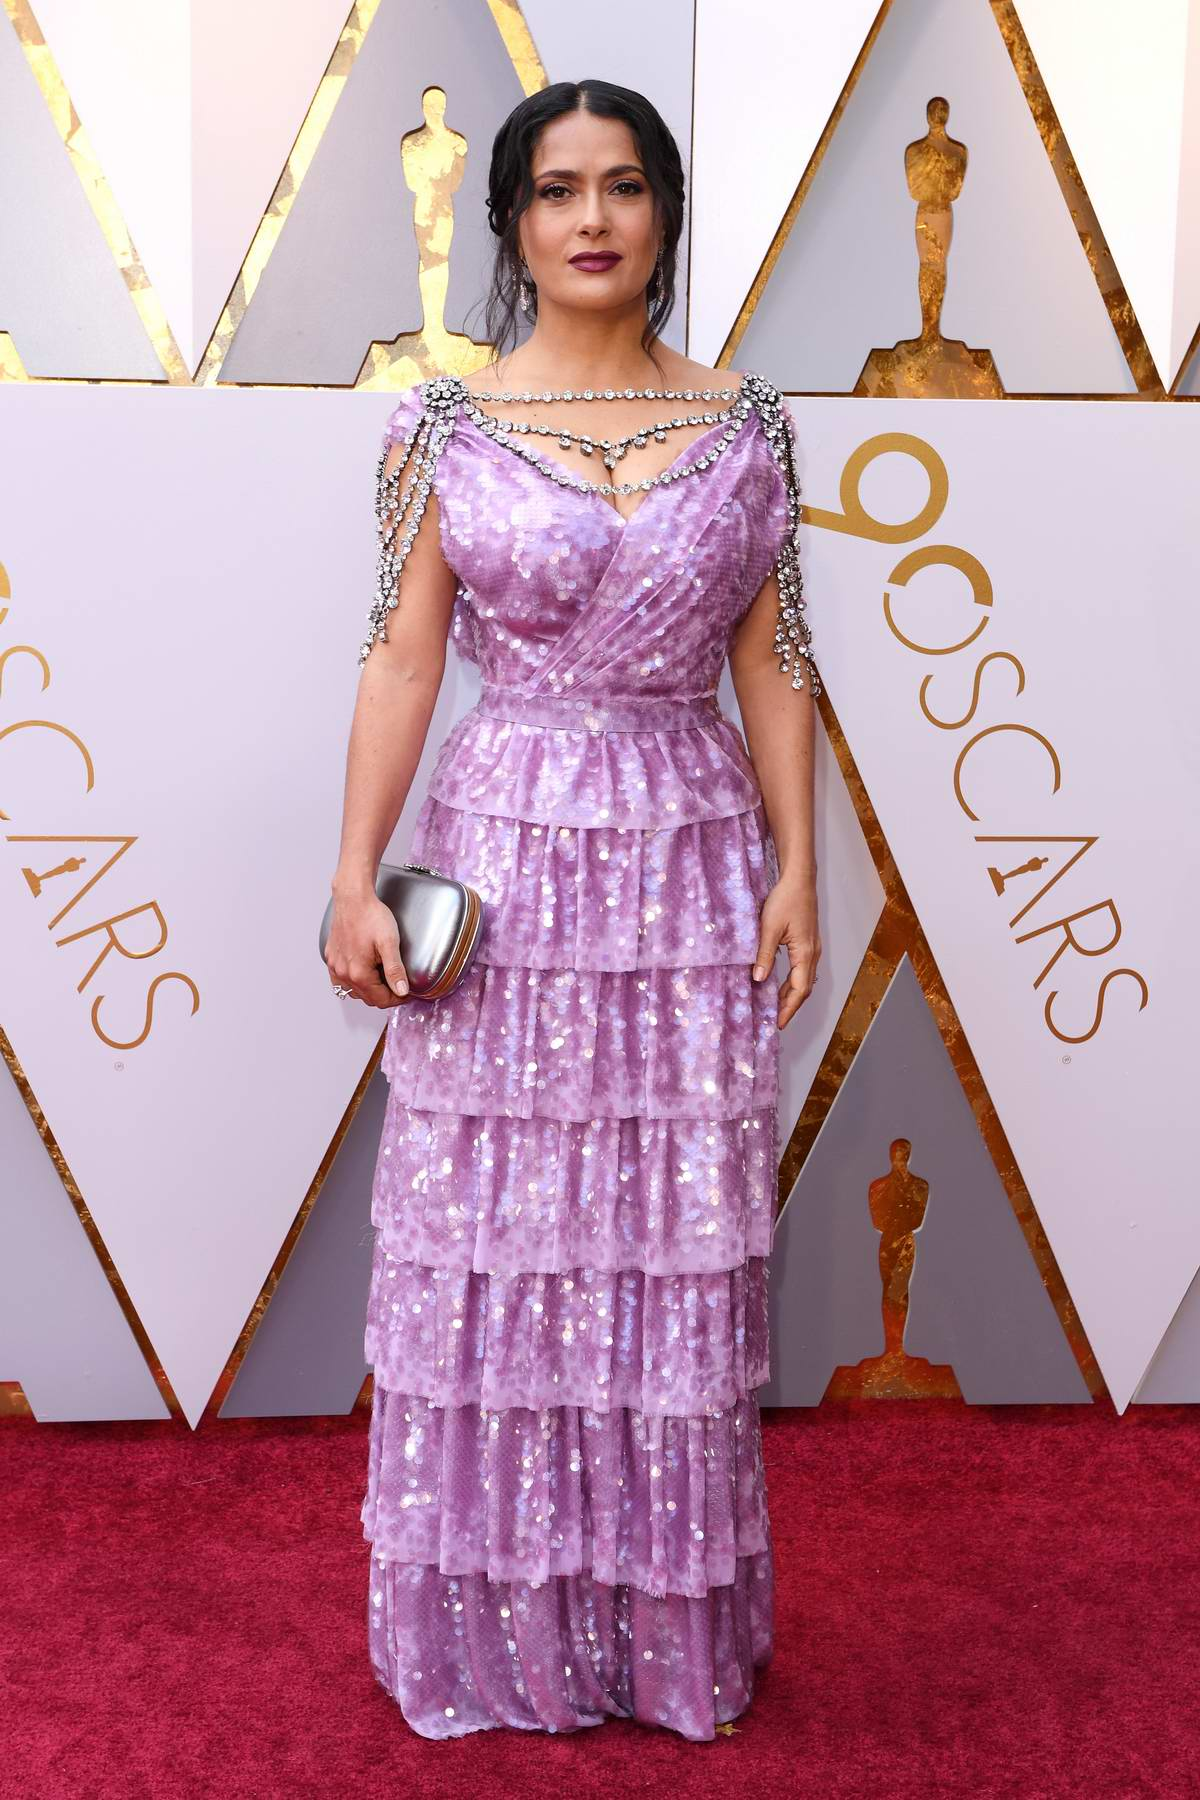 Salma Hayek attends The 90th Annual Academy Awards (Oscars 2018) held at Dolby Theatre in Hollywood, Los Angeles